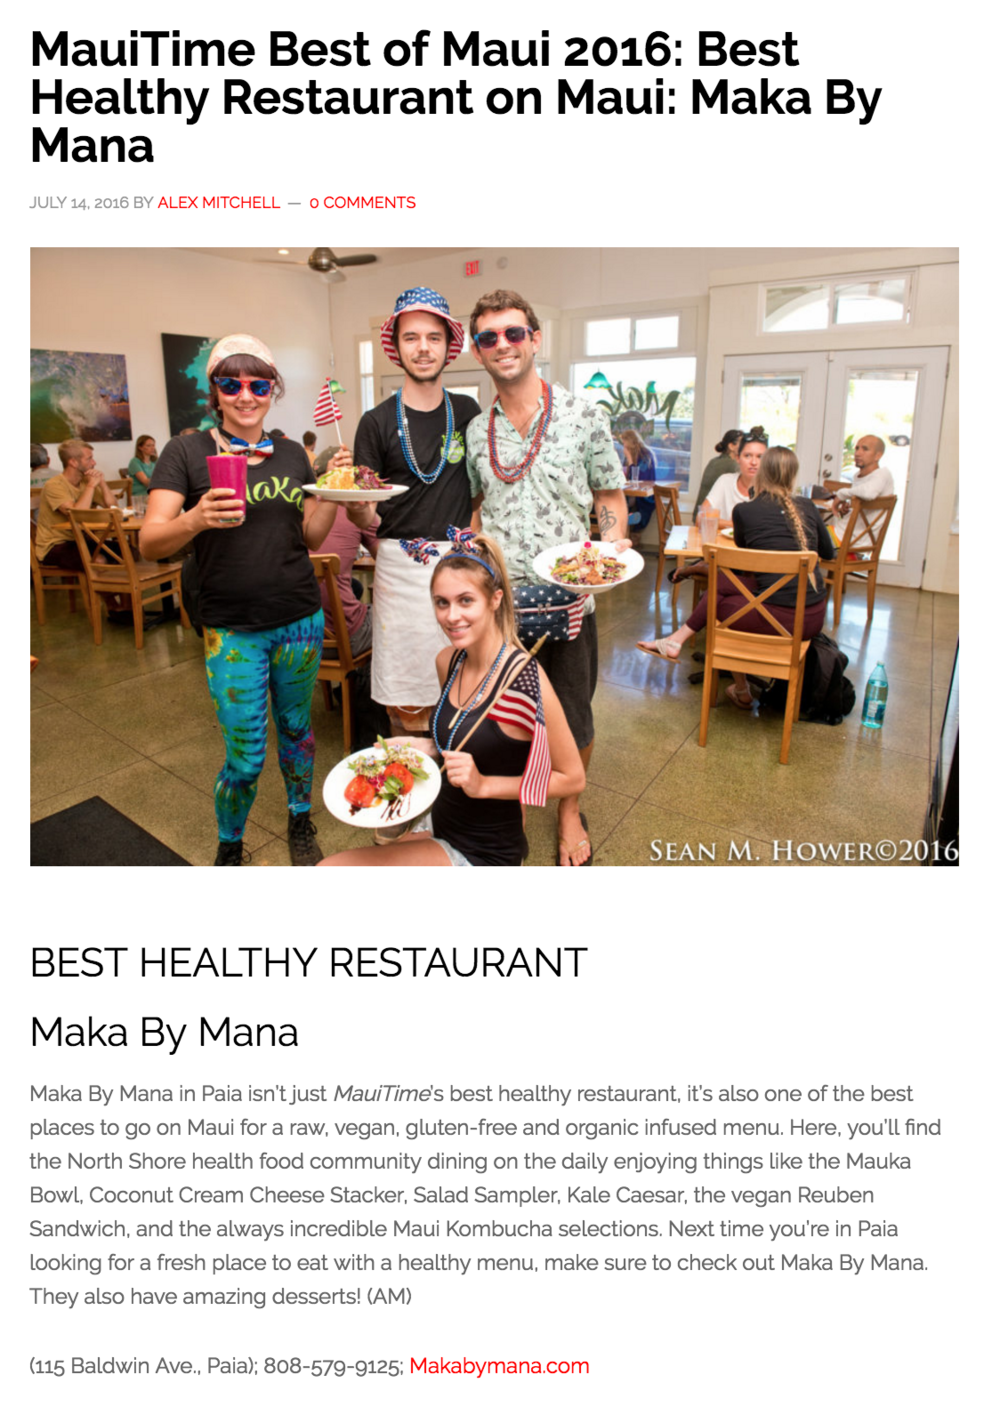 Maka-By-Mana-Best-Healthy-Restaurant-Maui-MauiTime-2016